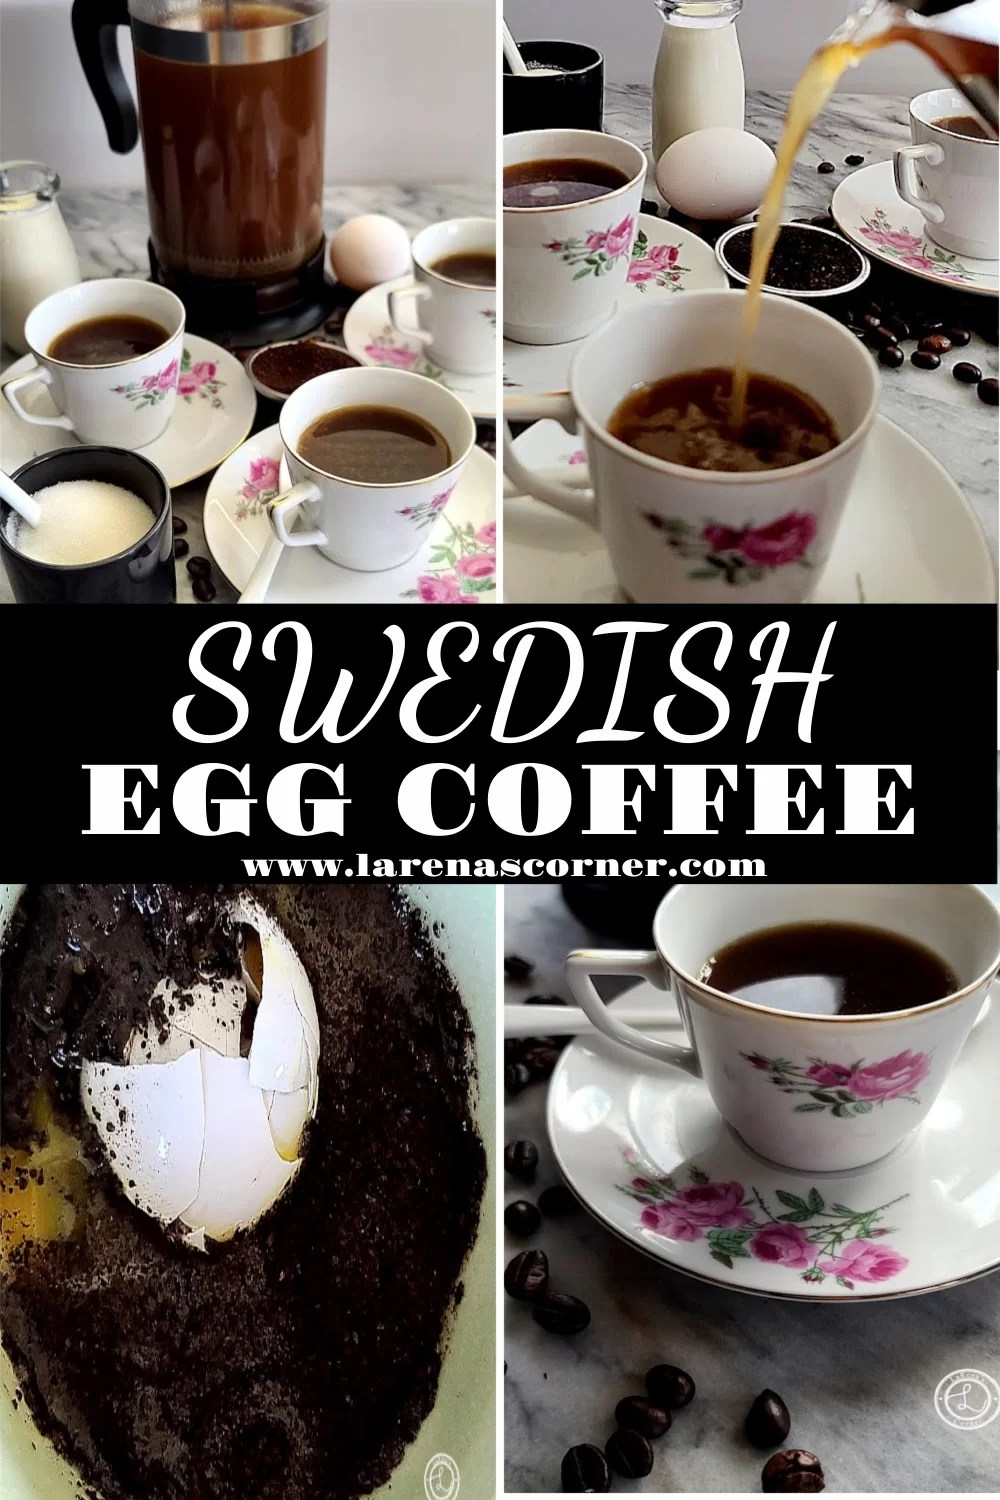 4 pictures of Swedish Egg Coffee